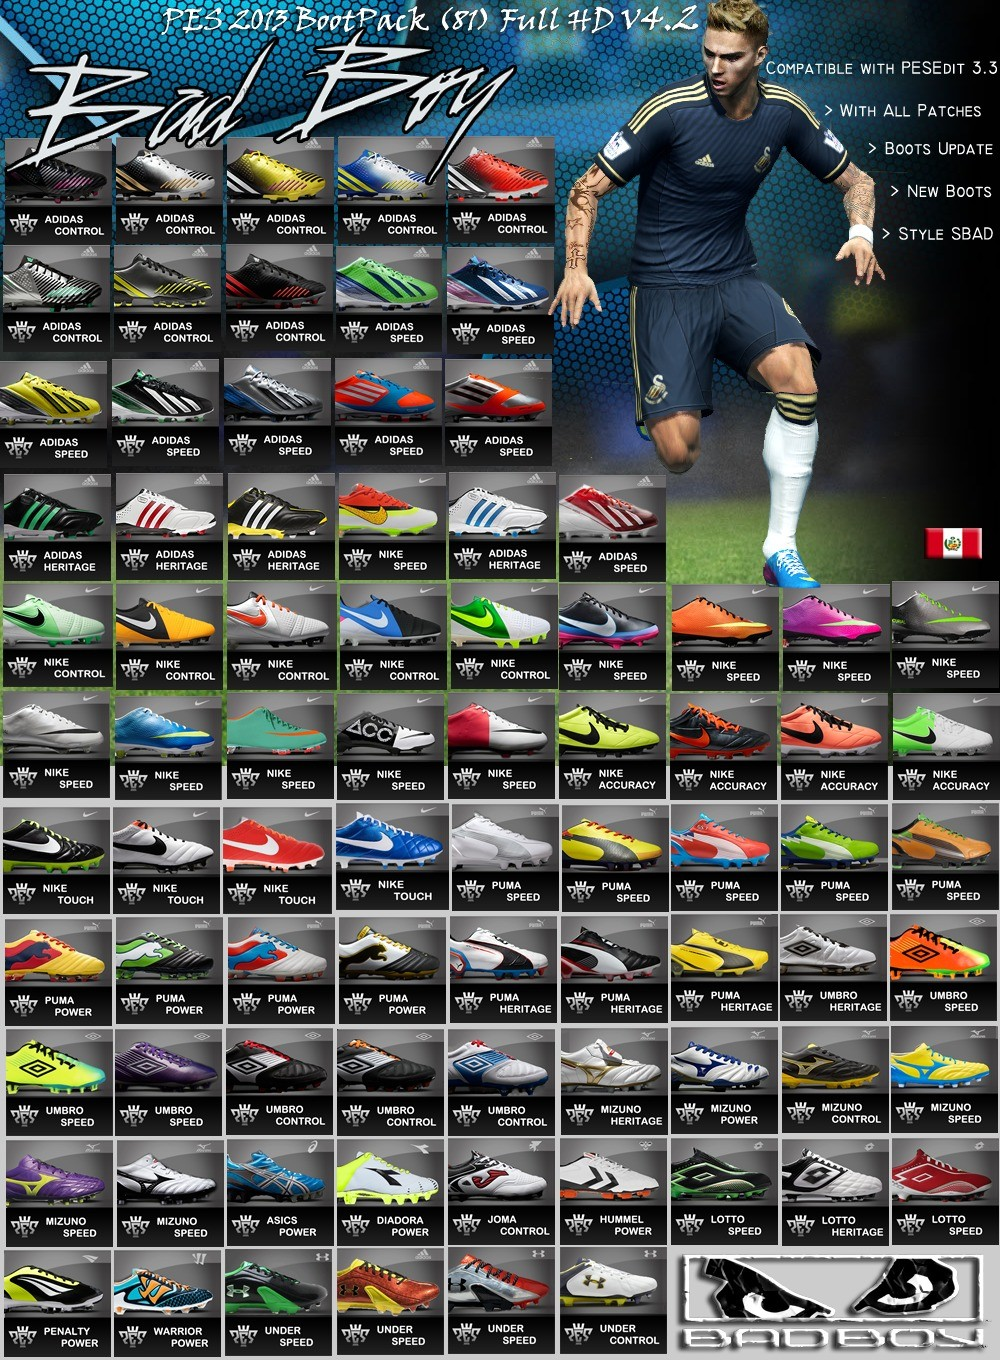 PES 2013 BootPack (81) Full HD V4.2 by SBadBoy + v5